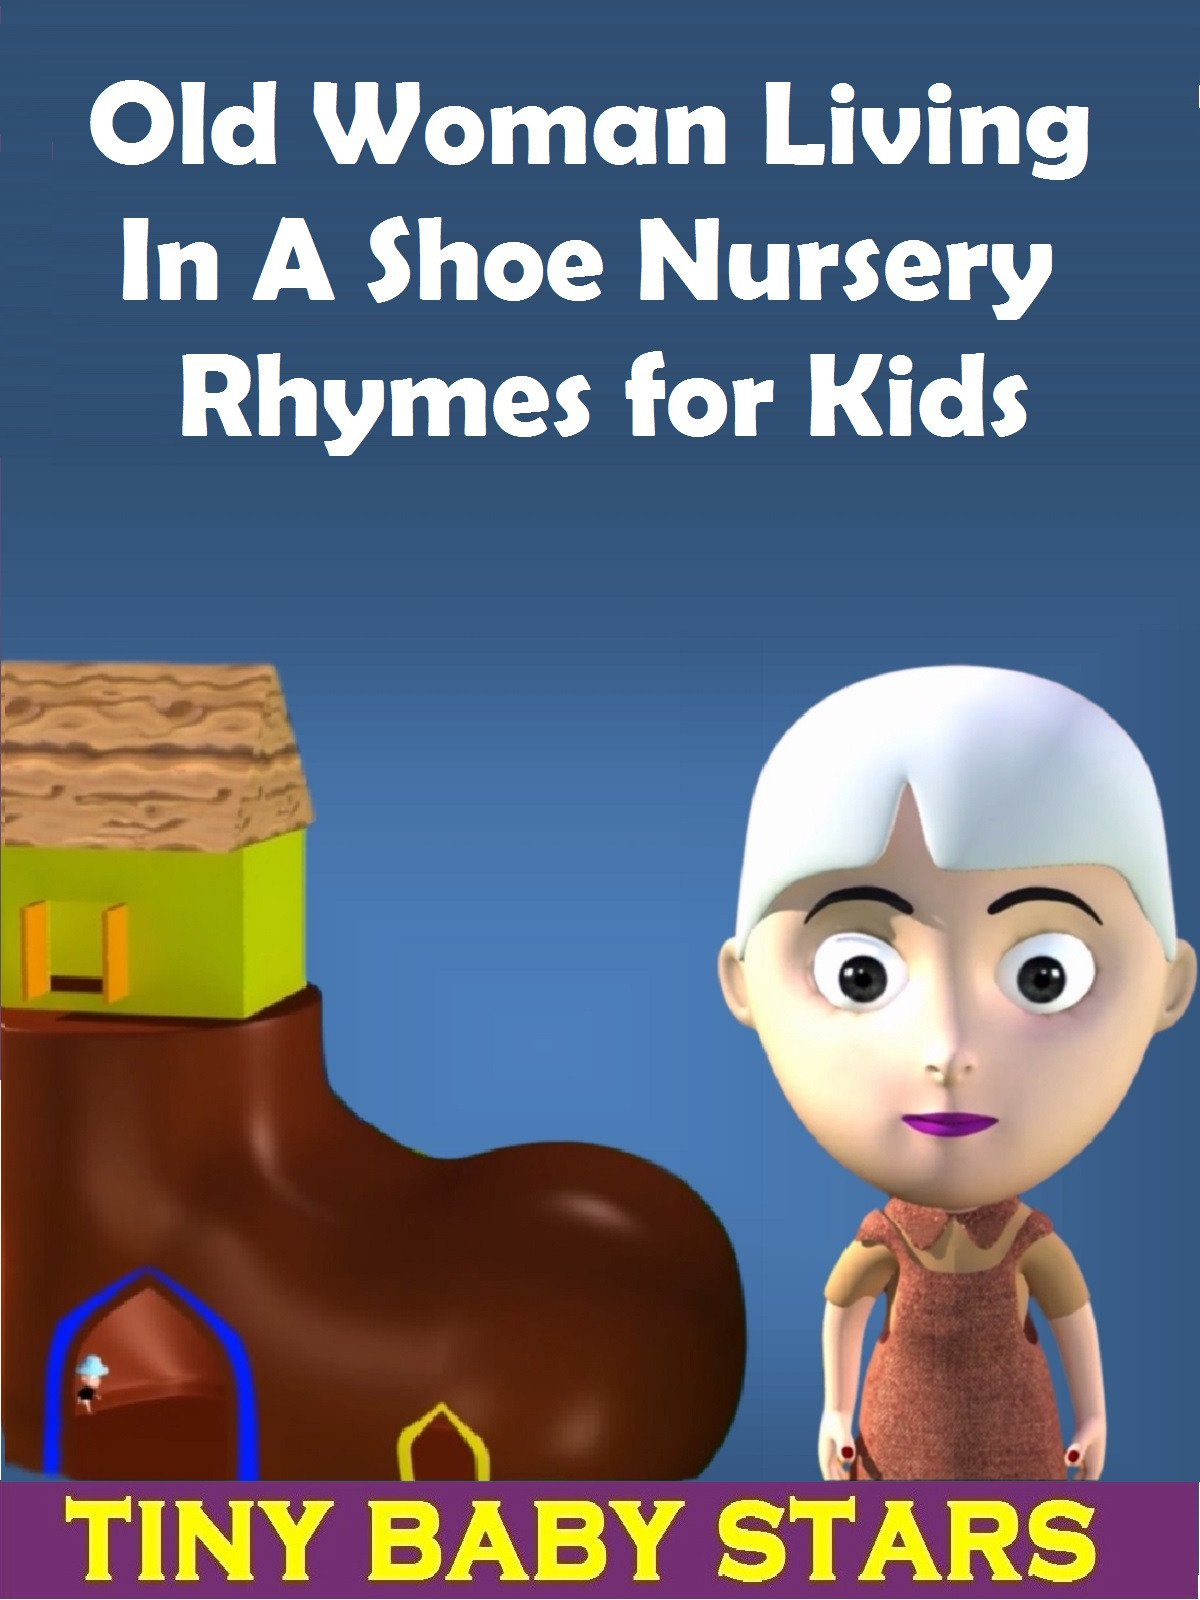 Old Woman Living In a Shoe Nursery Rhymes for Kids